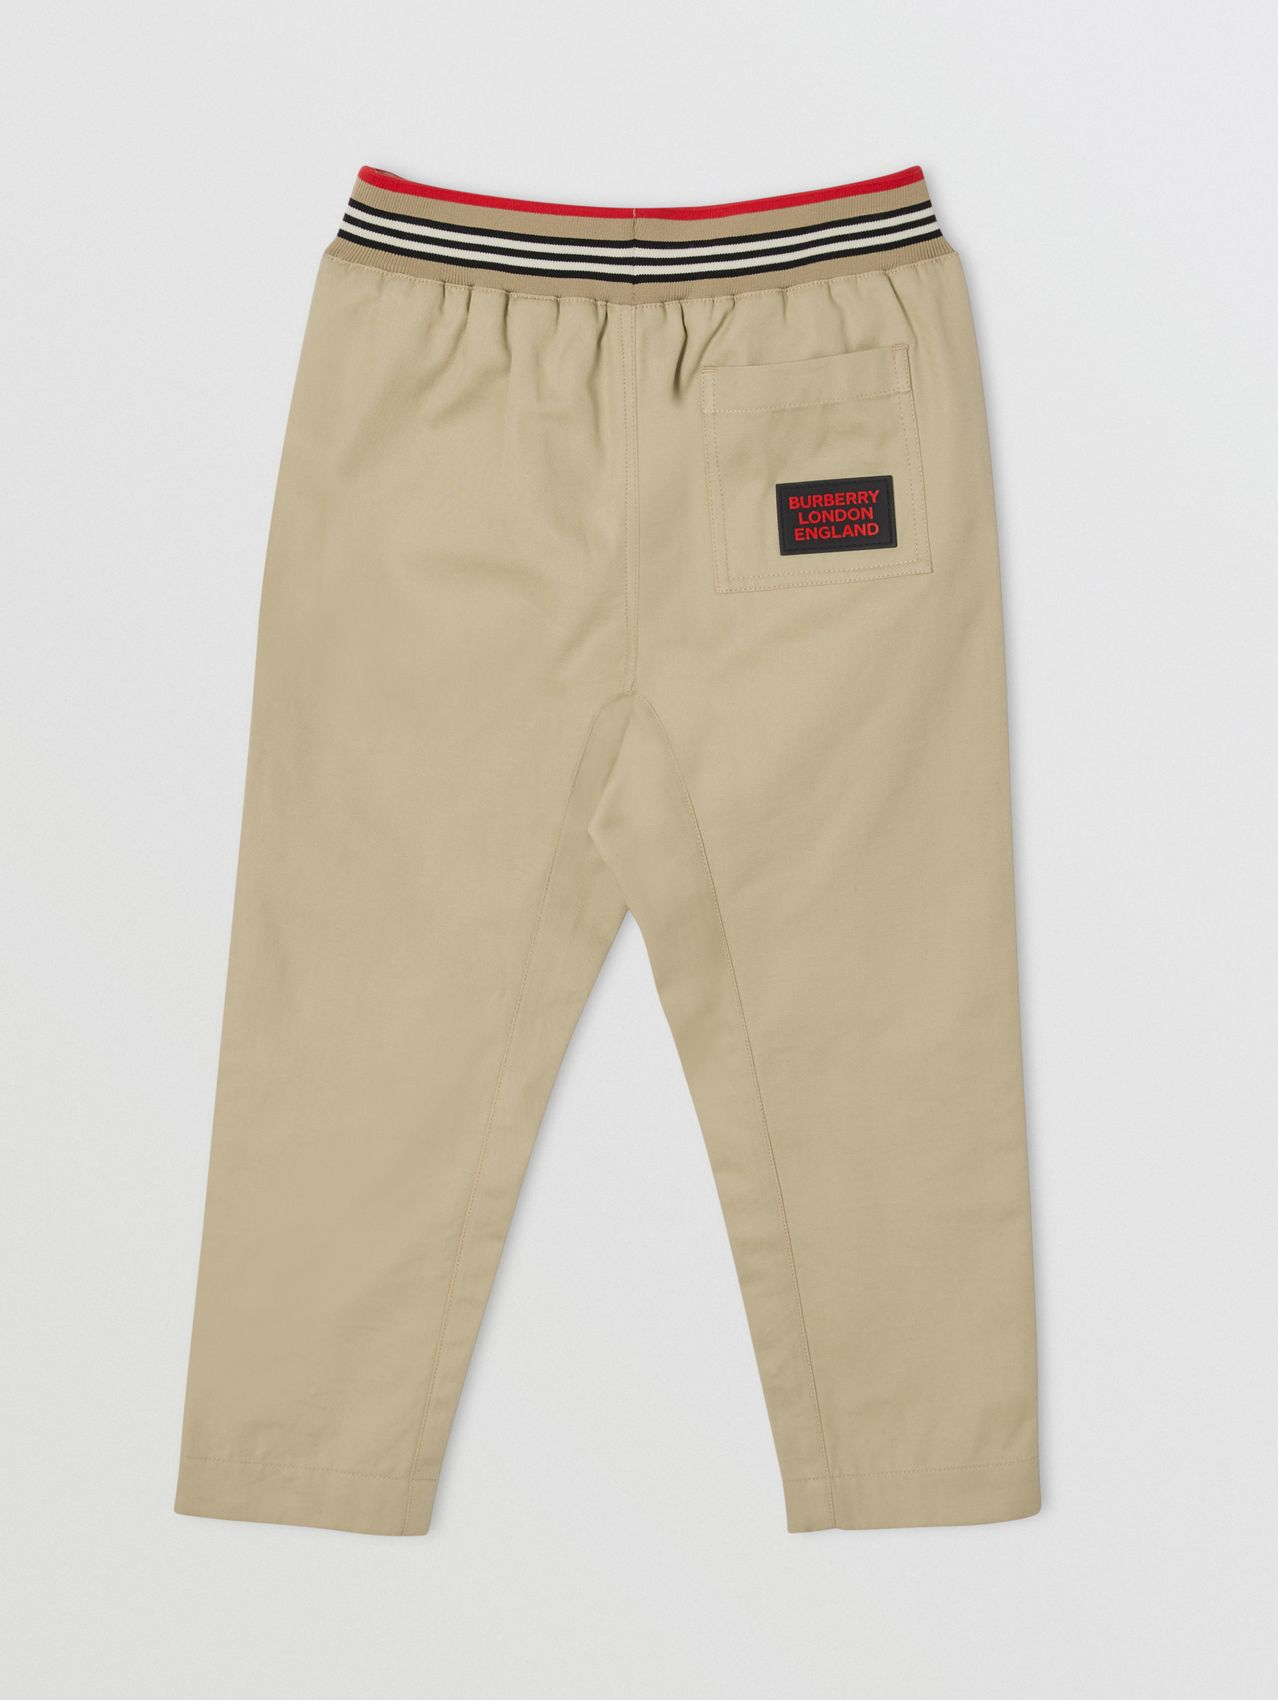 Pantaloni in twill di cotone con coulisse e iconico motivo a righe (Miele)